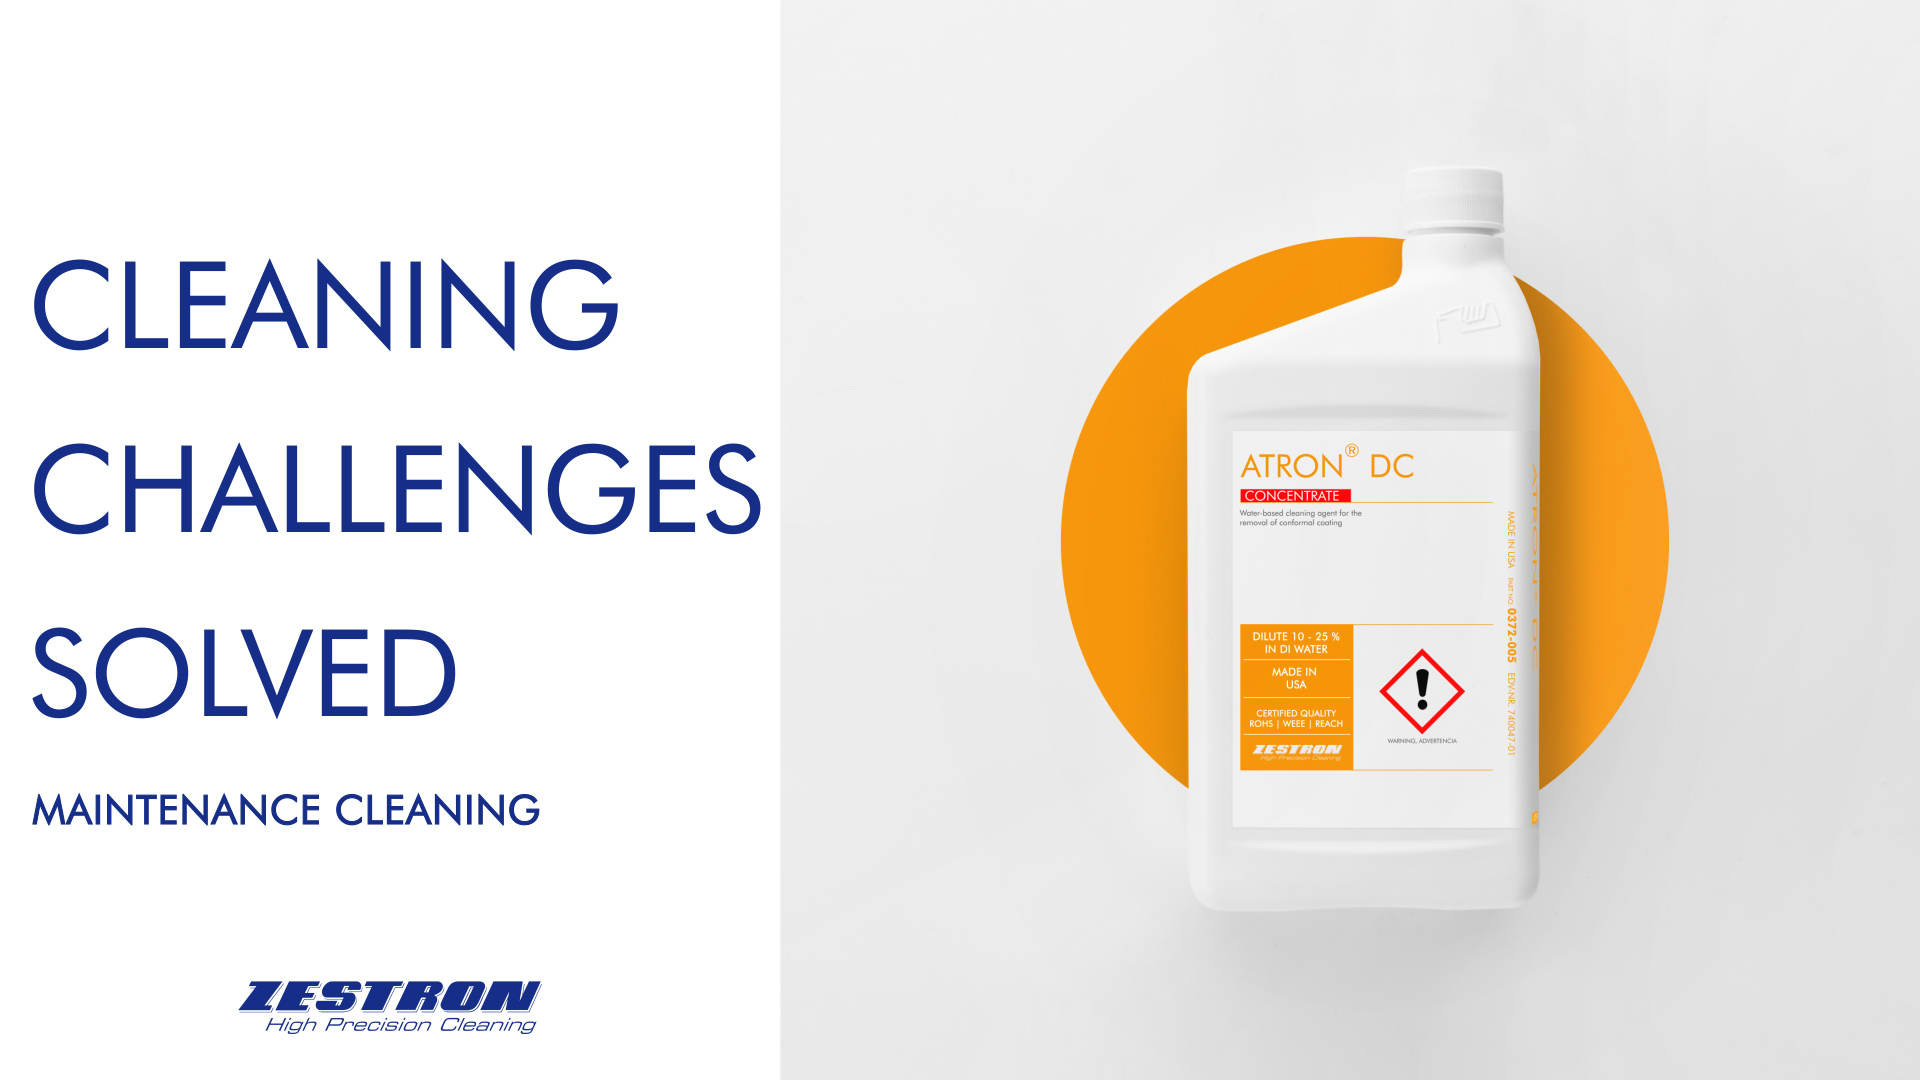 Maintenance Cleaning Challenges